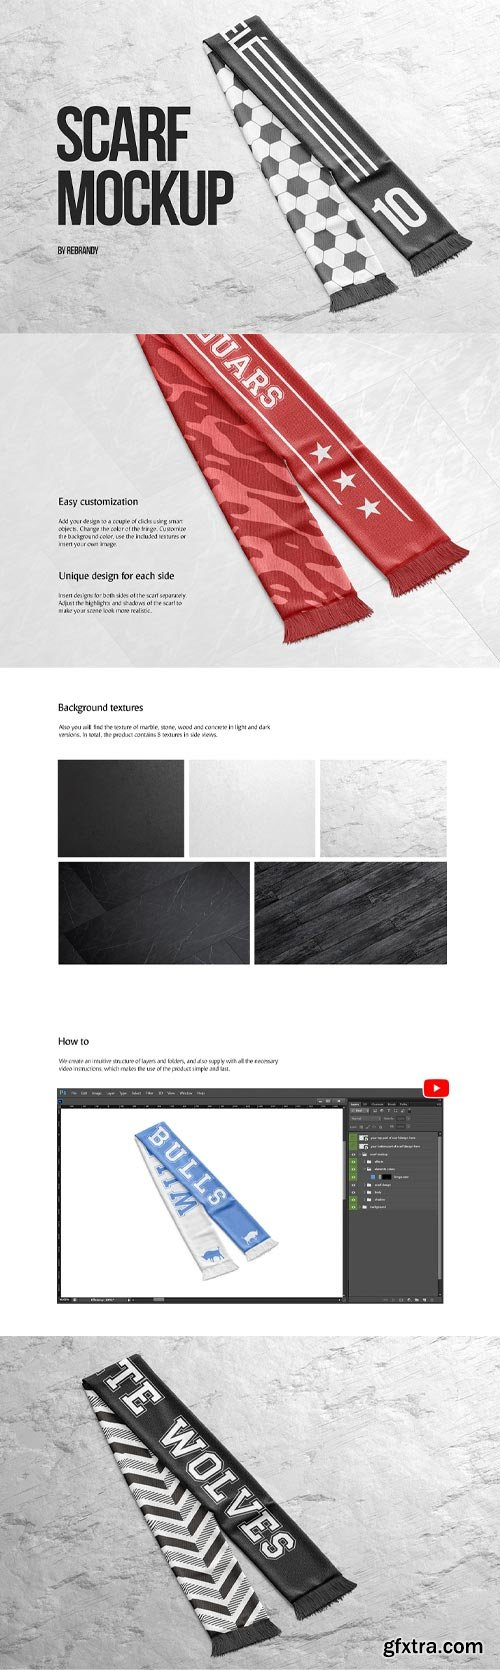 YellowImages - Scarf Mockup - 83498